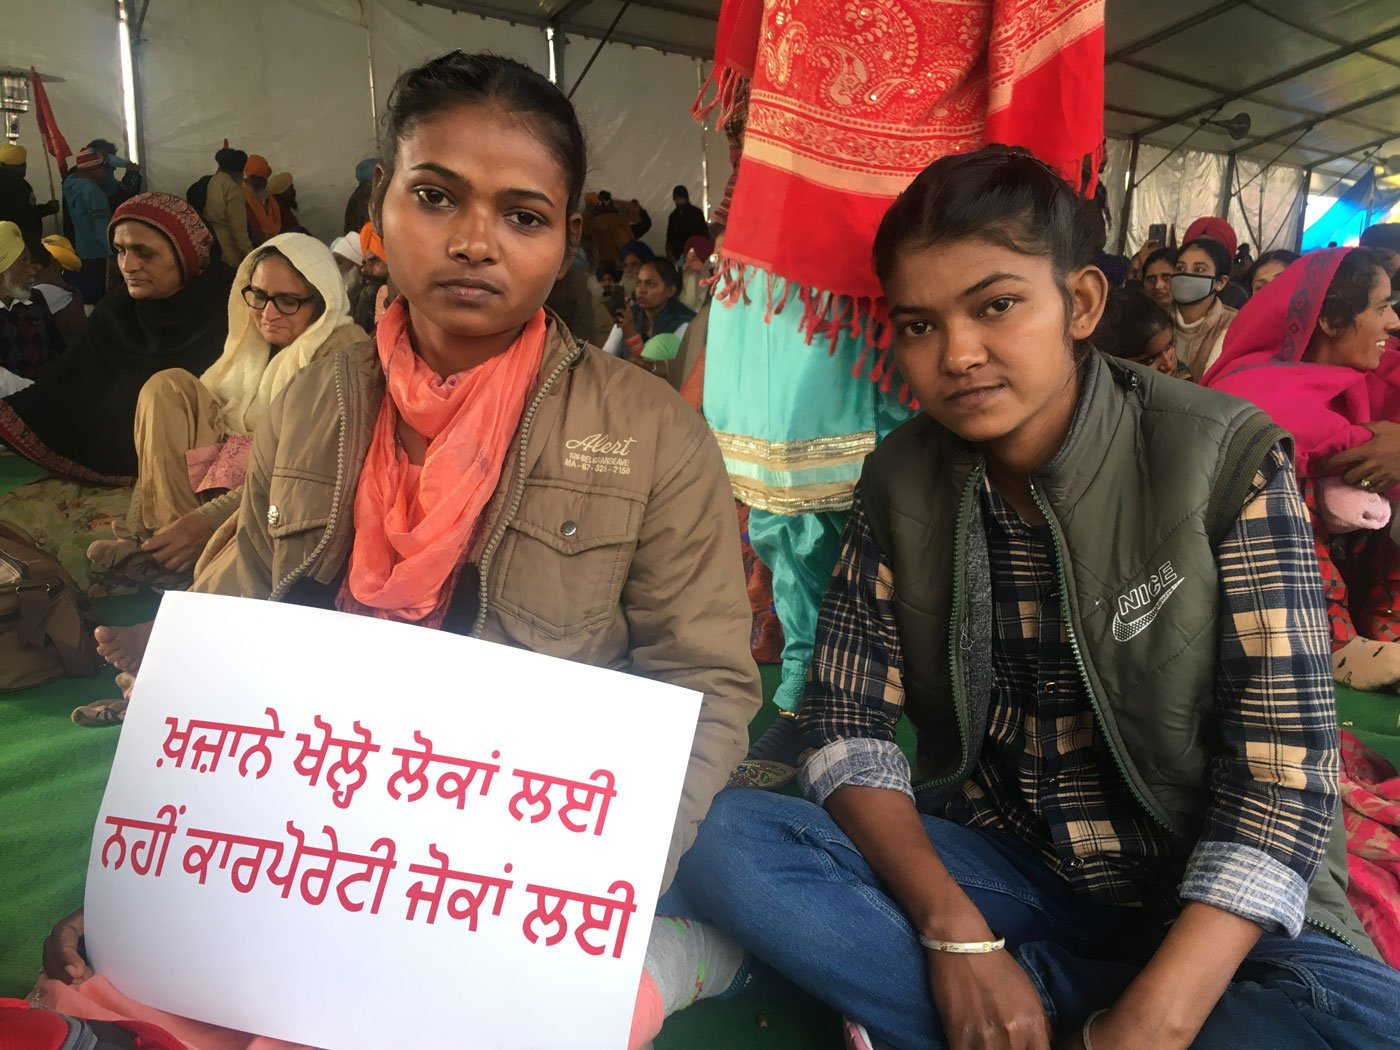 Resham (left) and Beant: 'If farmers' land is taken away by these laws, will our parents find work and educate their children?'